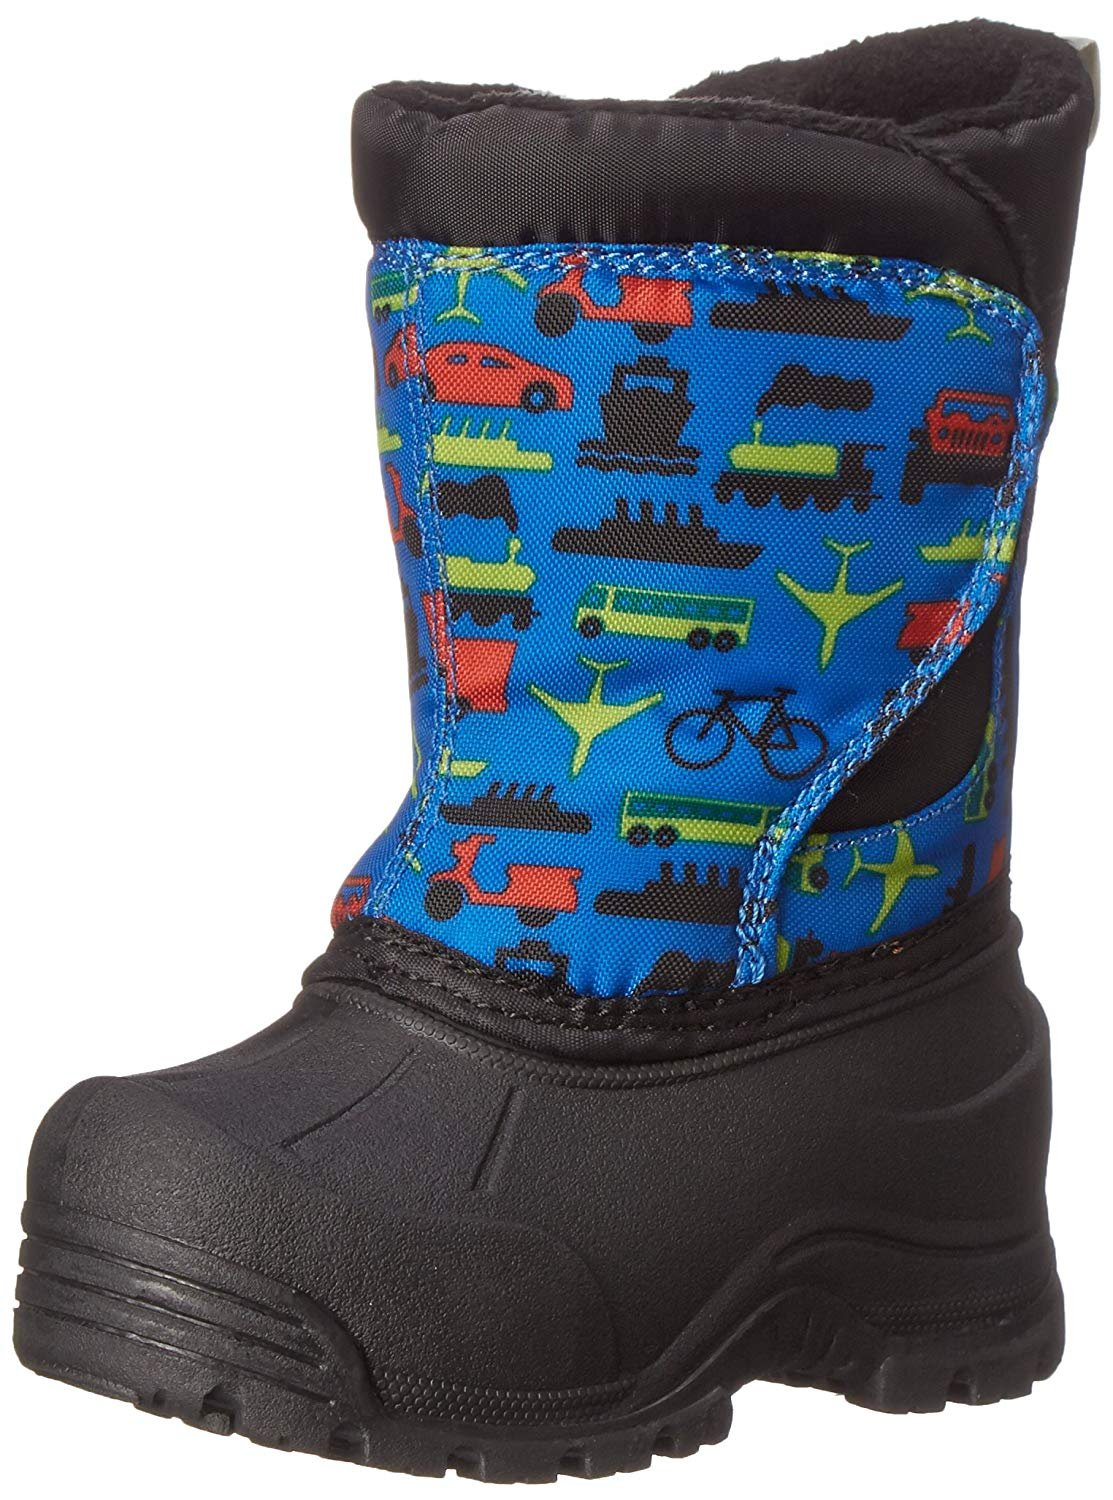 Northside Snoqualmie Cold Weather Boot (Toddler), Blue/Multi, 7 M US Toddler